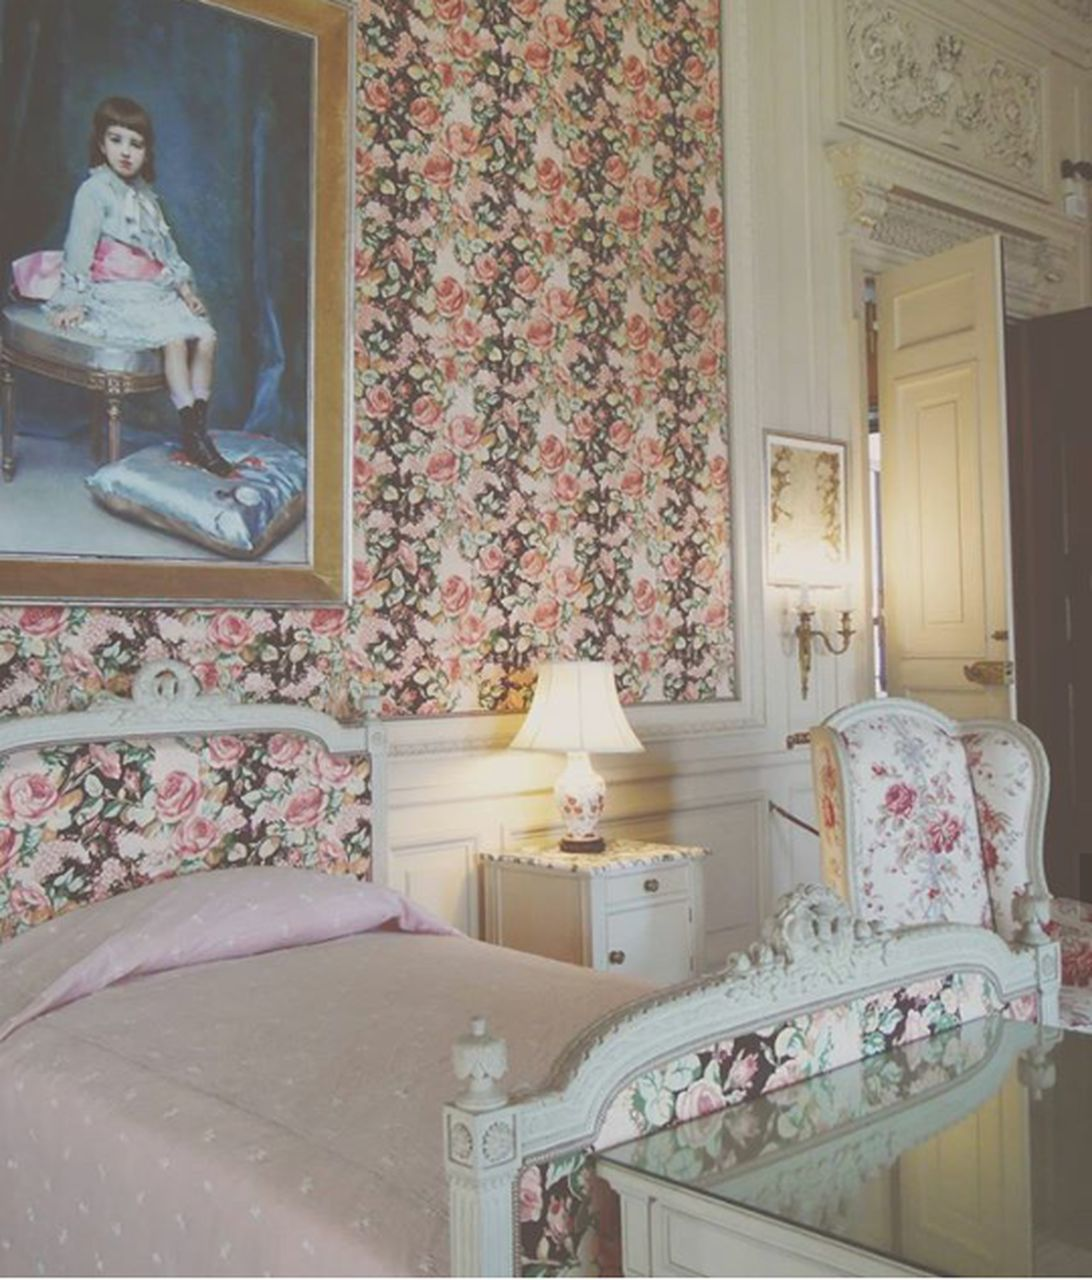 indoors, bedroom, home interior, no people, bed, wallpaper, curtain, architecture, home showcase interior, pillow, day